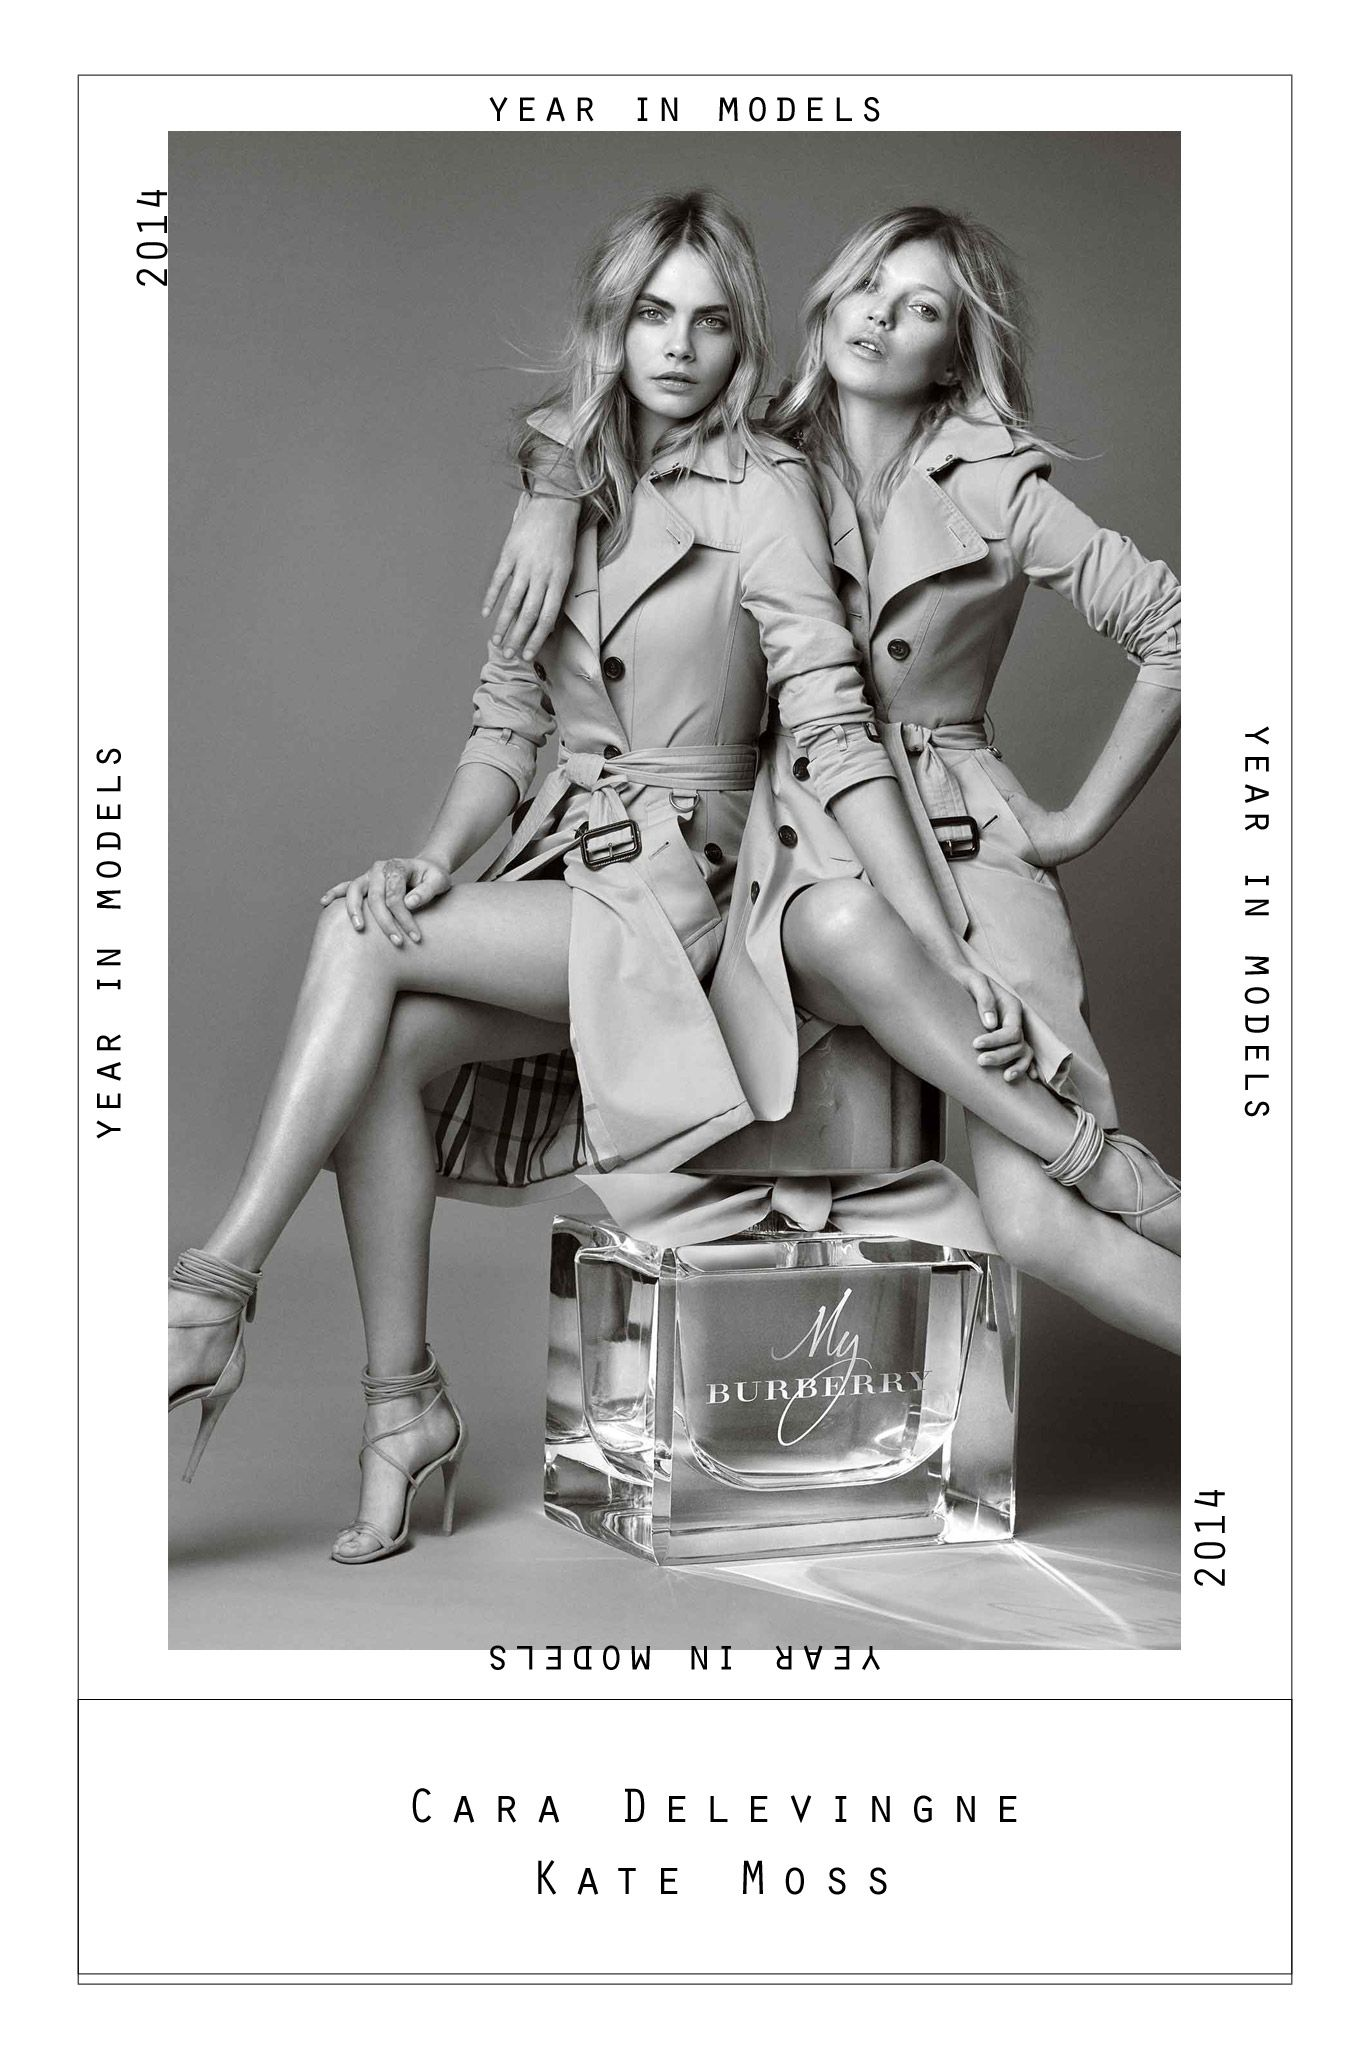 2014 The Year in Models Burberry fragrance